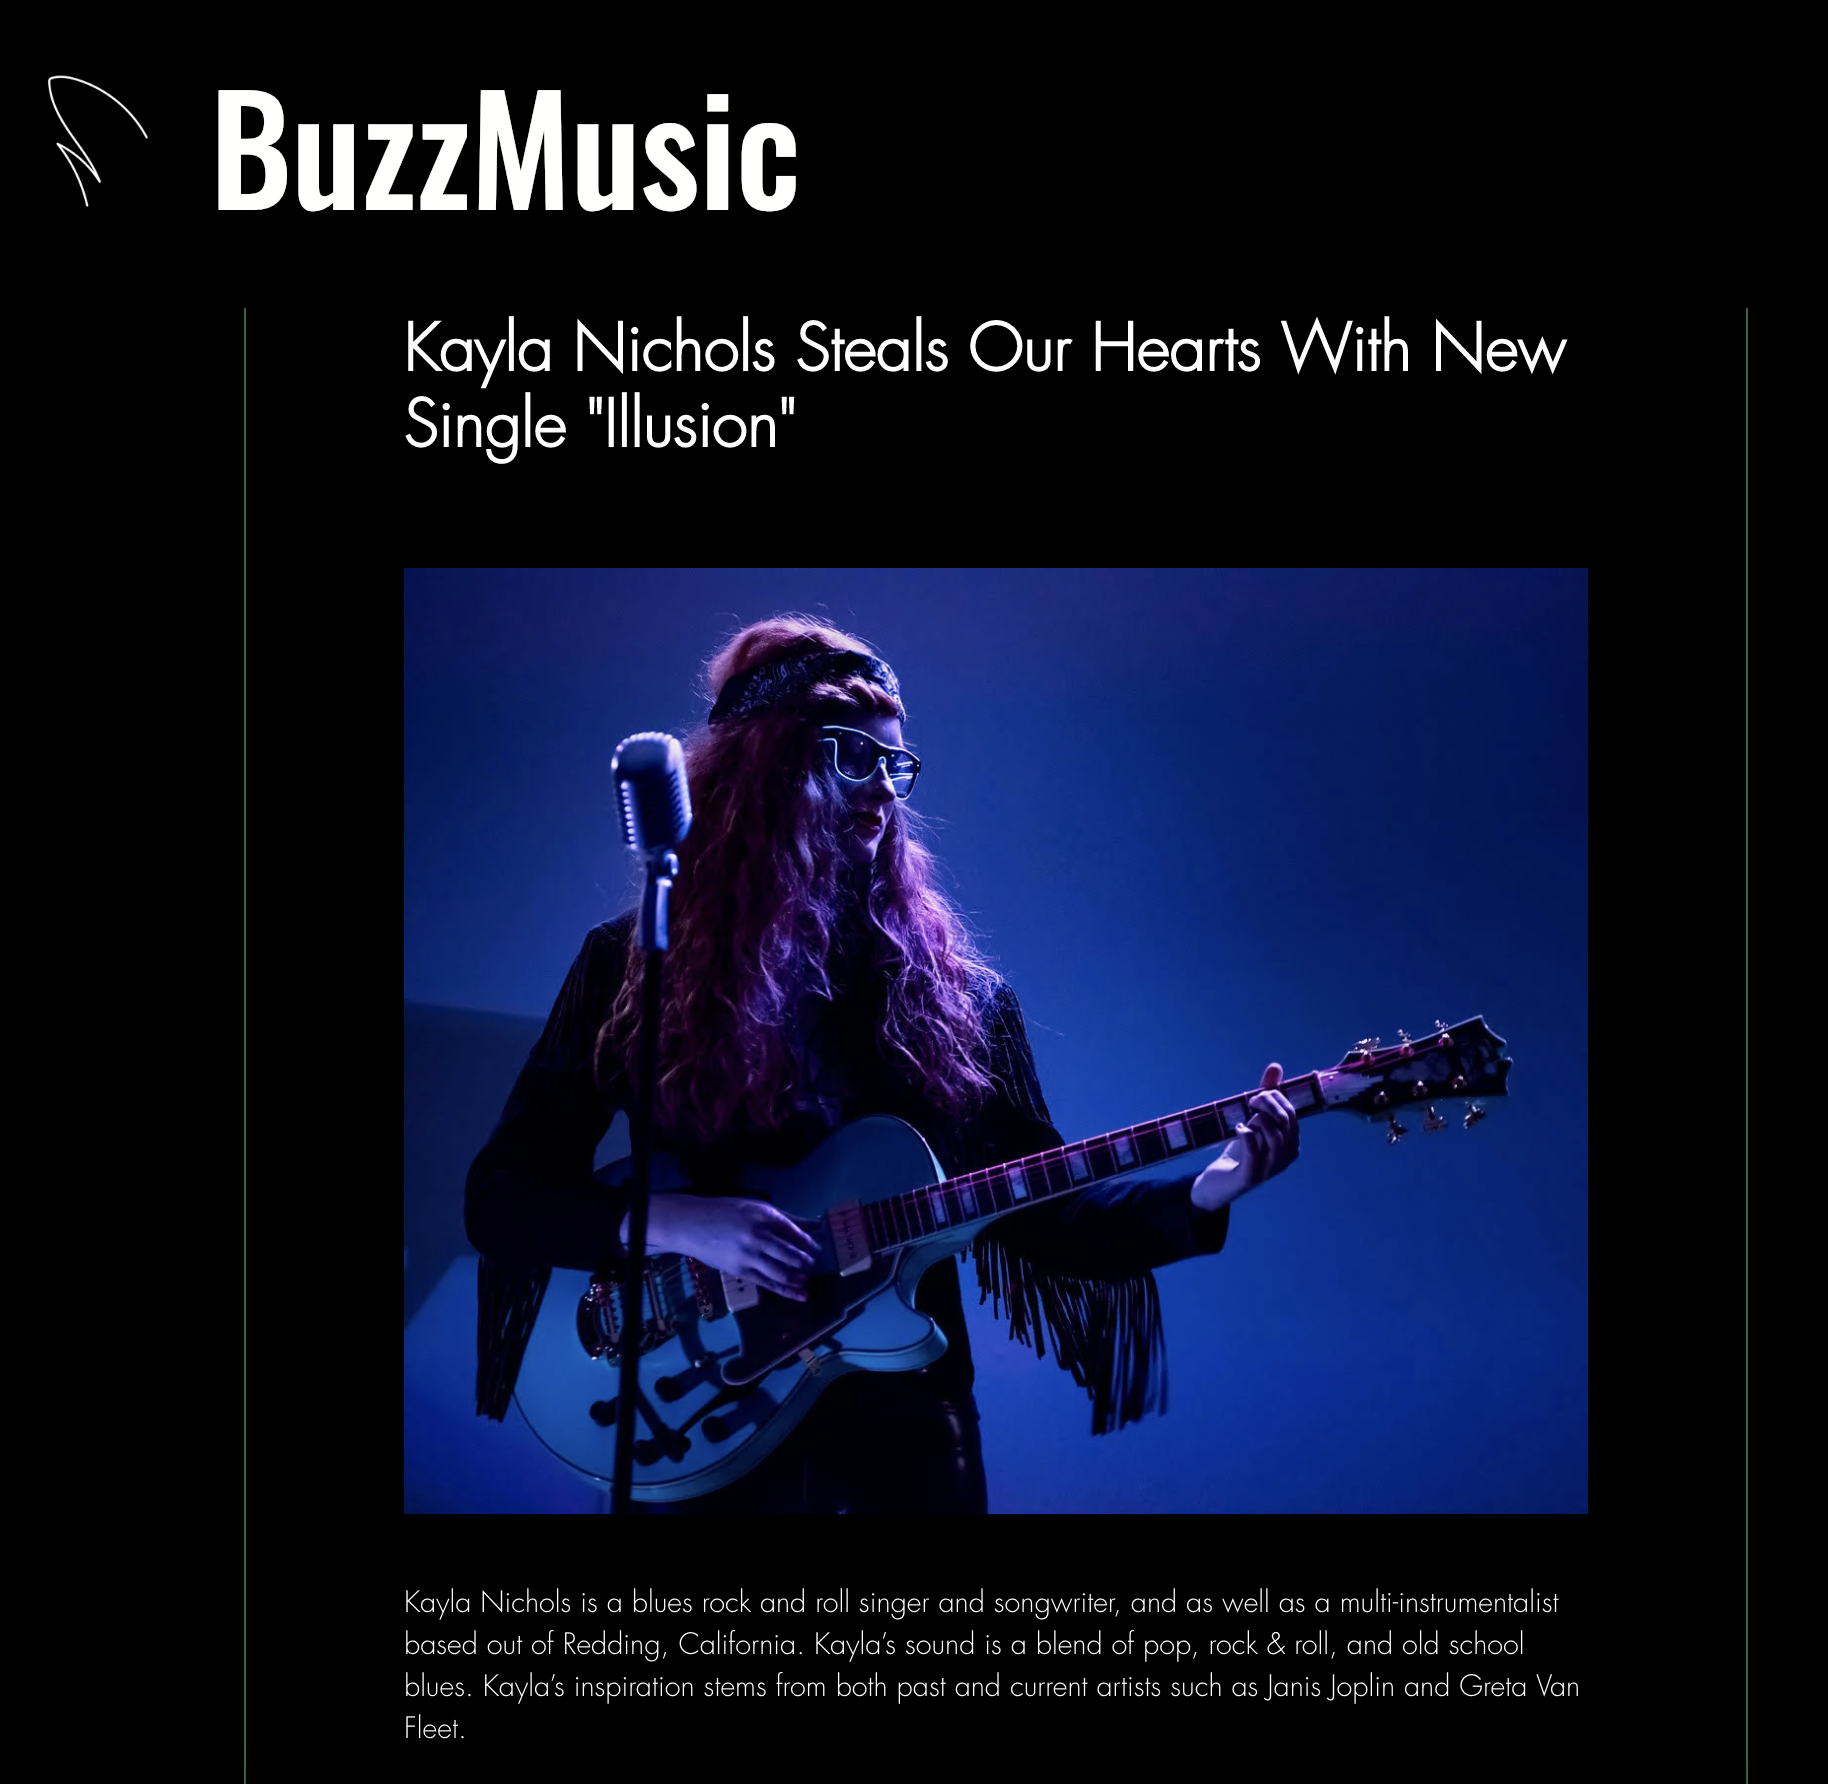 Buzz Music is a Los Angelos based music blog. Read the full article and interview at  https://www.buzz-music.com/blog/kayla-nichols-steals-our-hearts-with-new-single-illusion